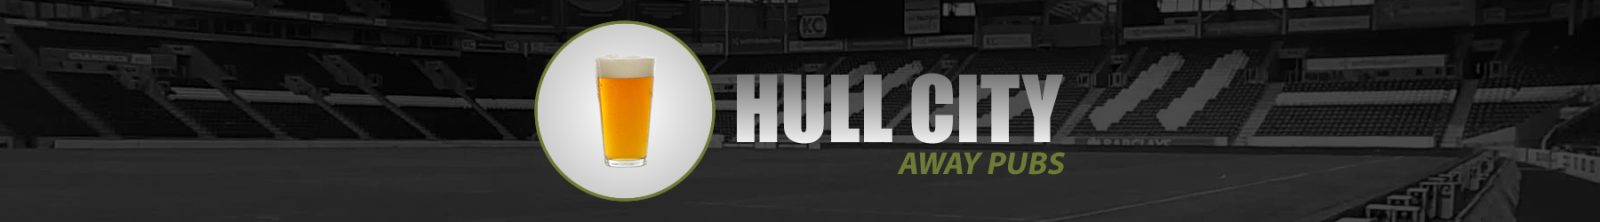 Hull City Away Pubs